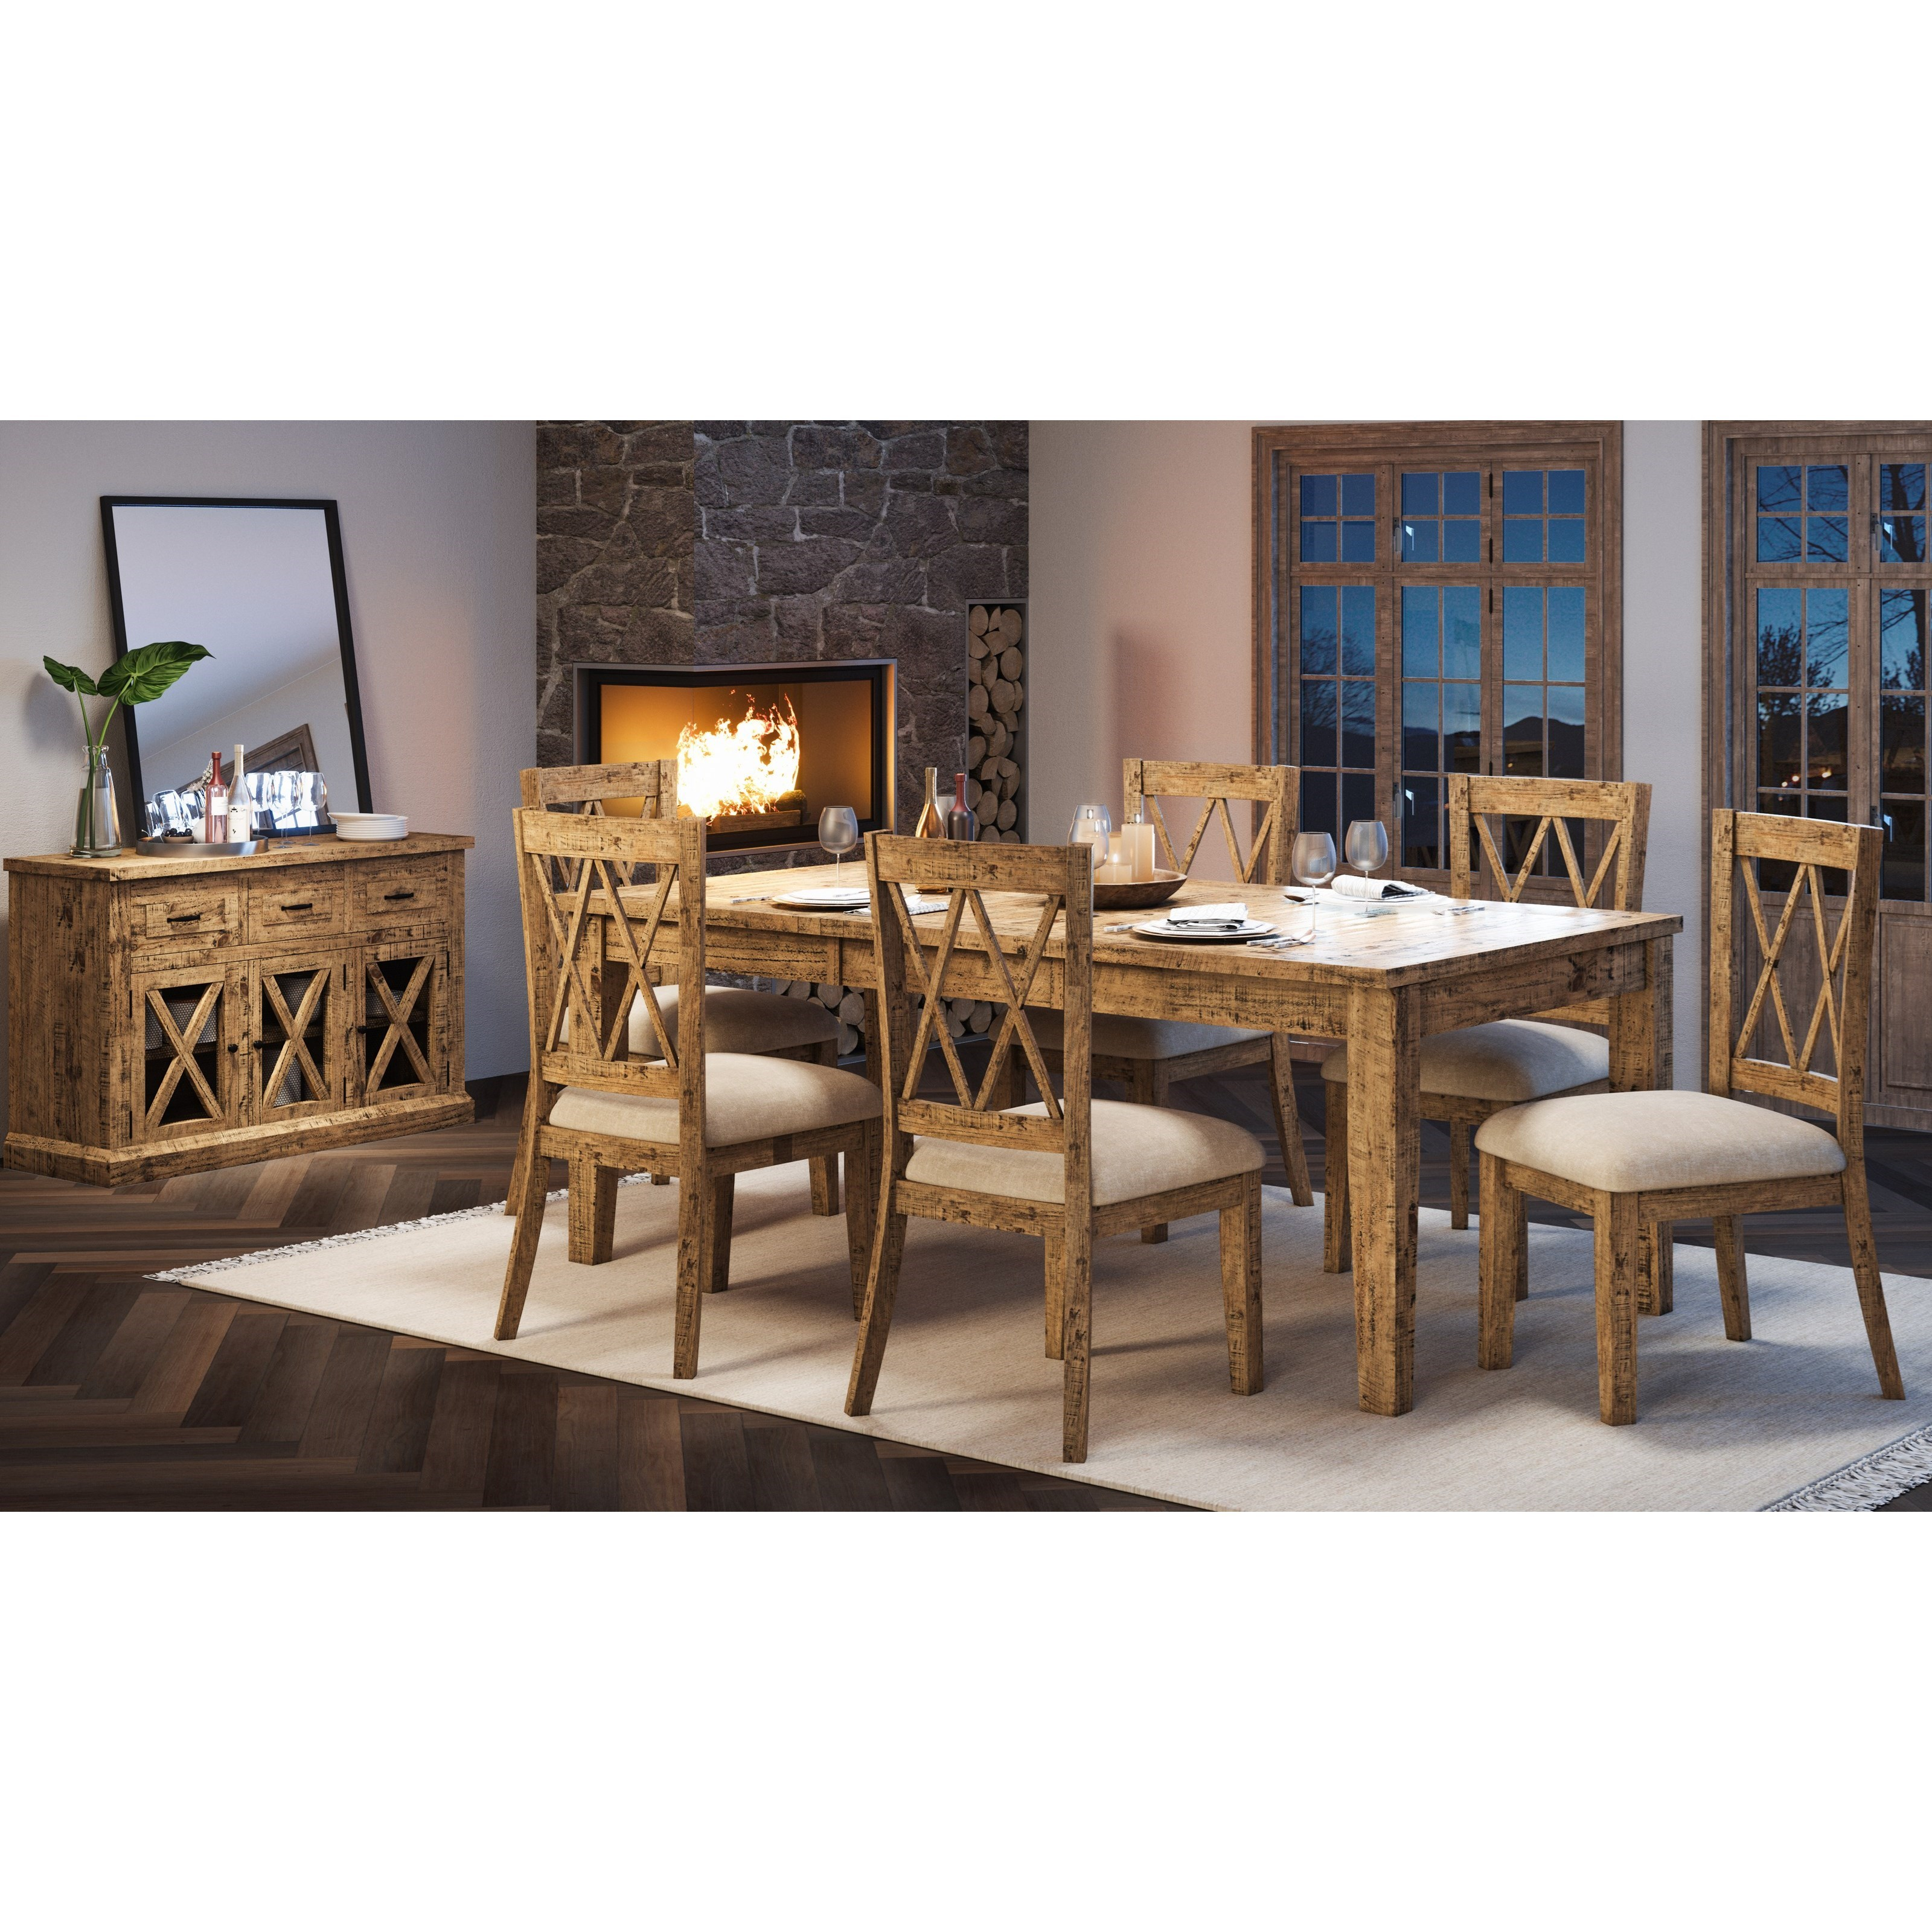 Telluride  7-Piece Table and Chair Set by Jofran at Jofran